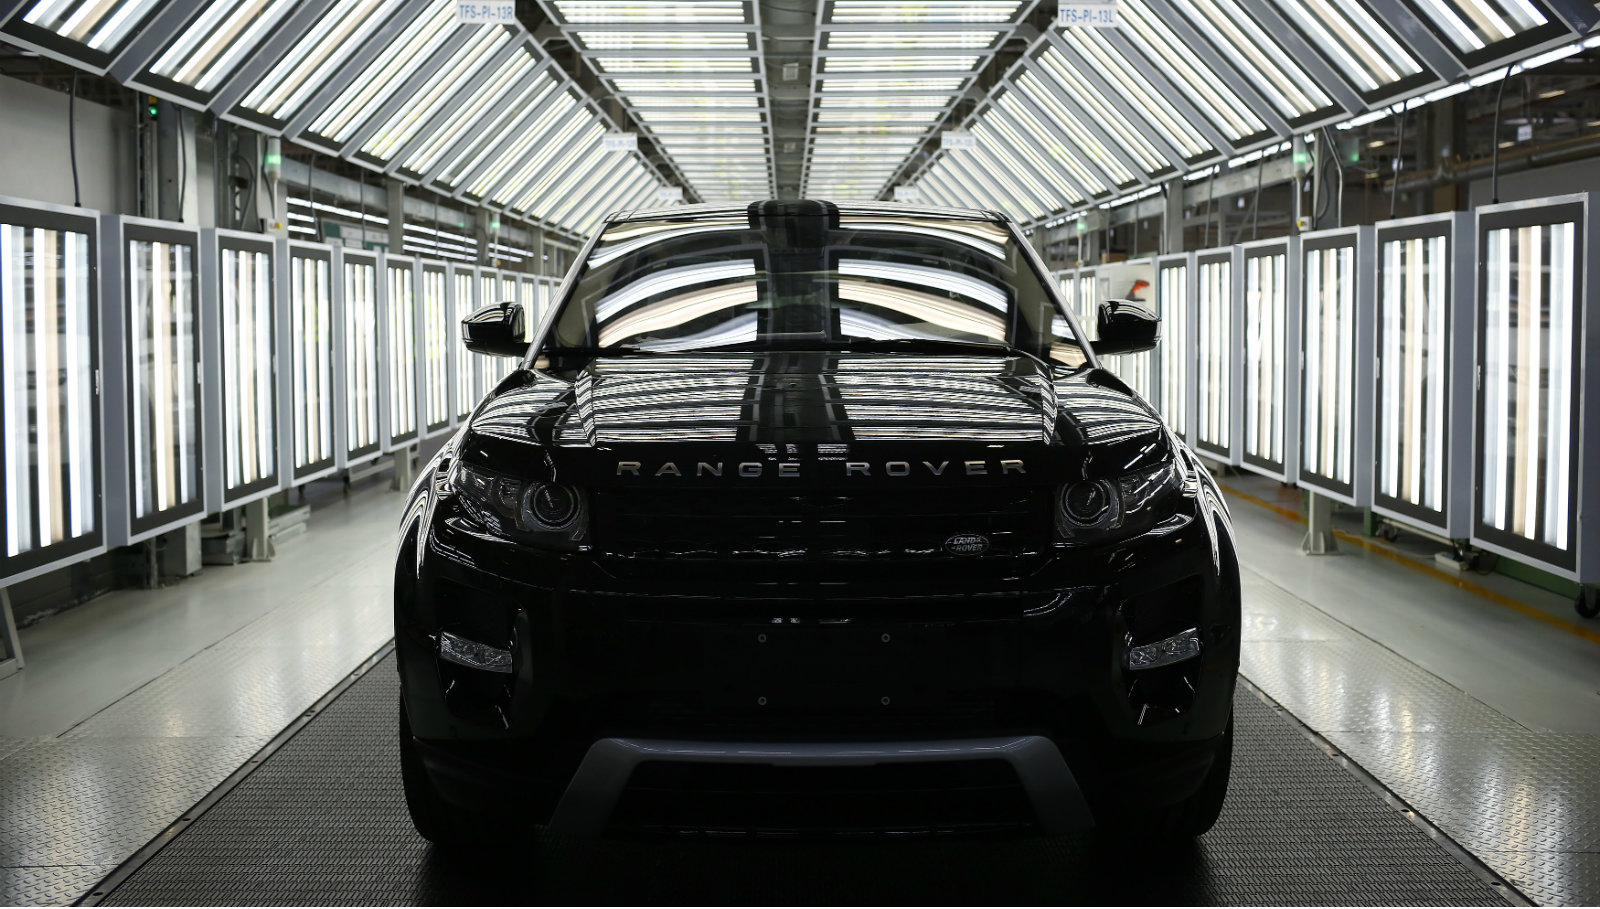 A Land Rover Evoque car is seen on the production line inside the Chery Jaguar Land Rover plant before the plant opening ceremony in Changshu, Jiangsu province, October 21, 2014. British luxury carmaker Jaguar Land Rover Ltd, owned by Indian conglomerate Tata group, expects its China sales to grow 20 percent this year, Greater China head Bob Grace said on Tuesday.